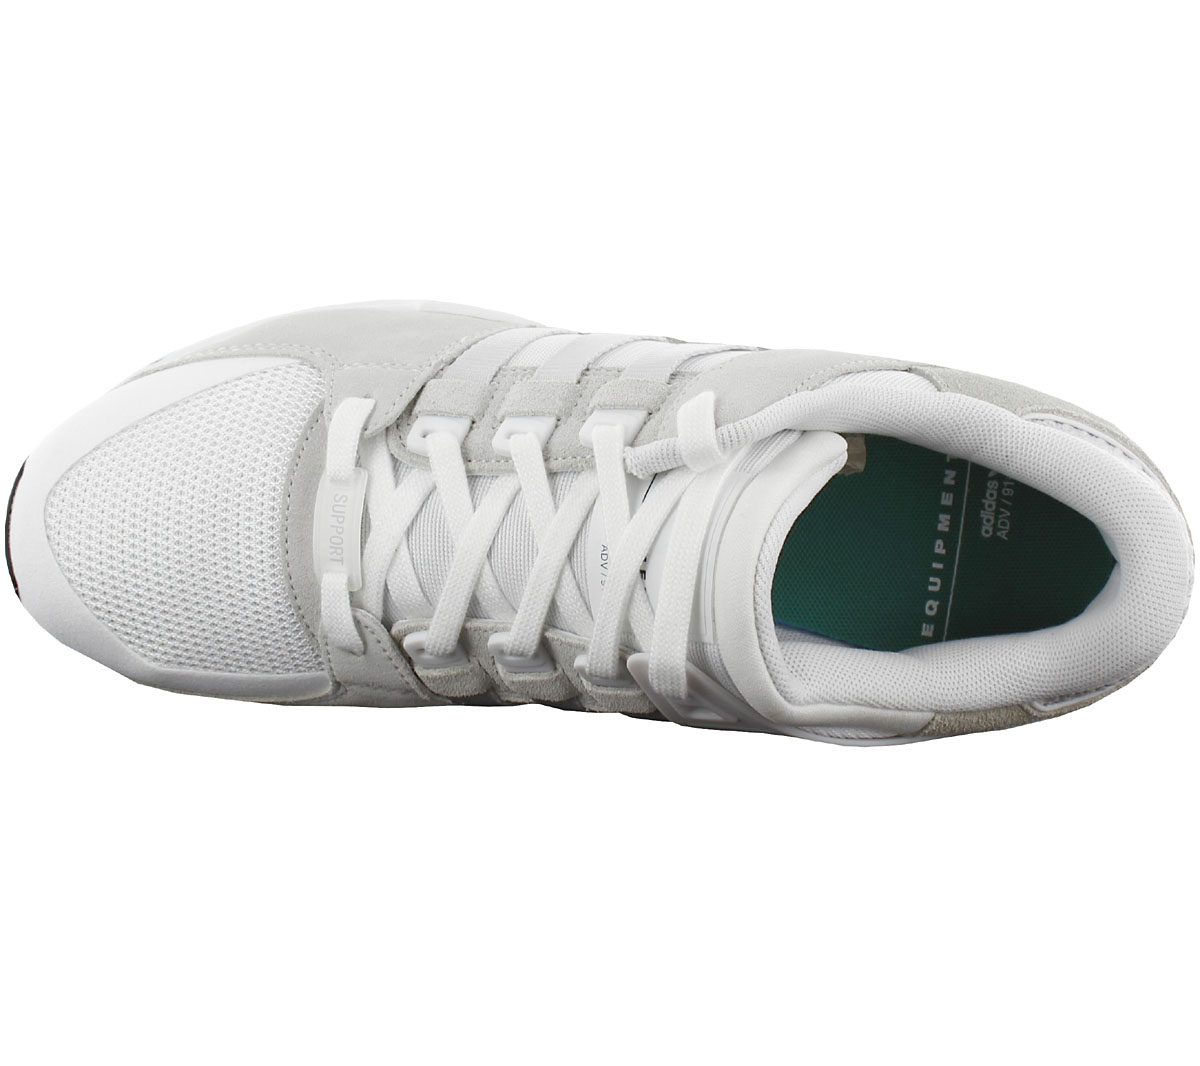 78e13abba5b3 Adidas Originals Eqt Equipment Support RF Shoes Trainers BY9625 New ...